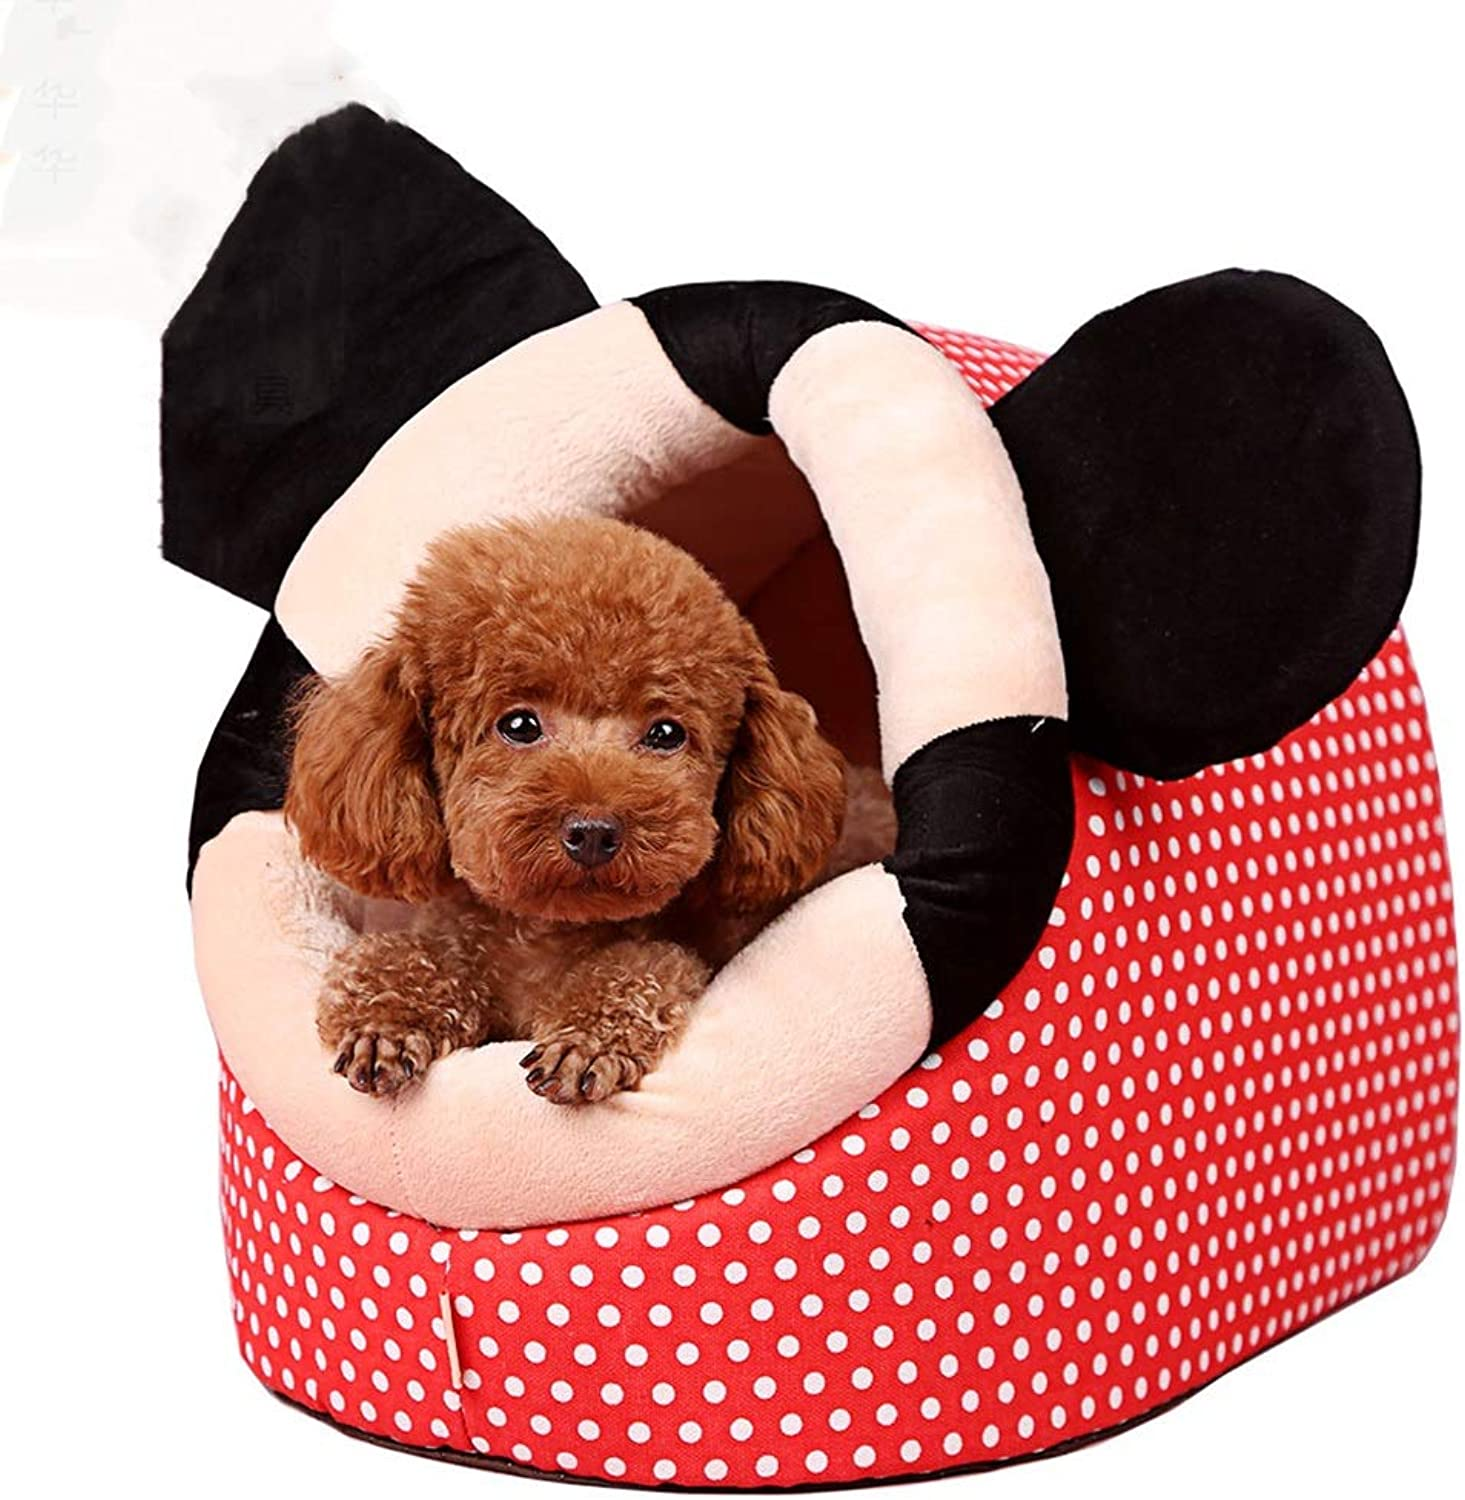 DQMSB Kennel SemiClosed Dog House Small Pet Winter Pet Warm Deep Sleep Room pet Bed (Size   M52  40cm)